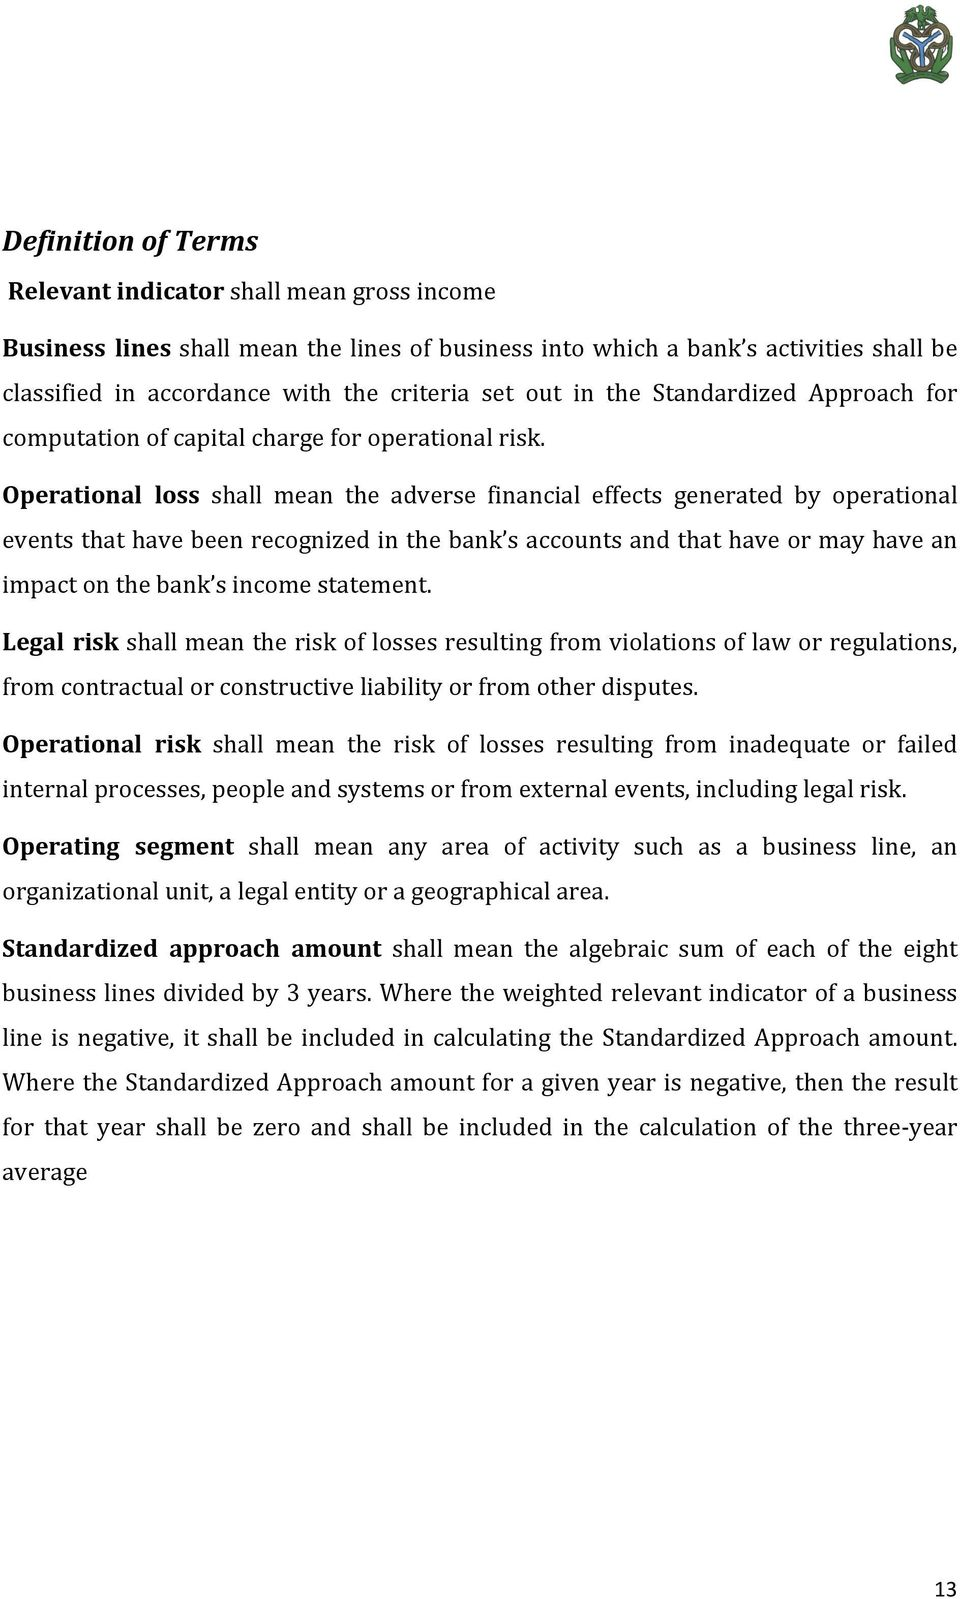 Operational loss shall mean the adverse financial effects generated by operational events that have been recognized in the bank s accounts and that have or may have an impact on the bank s income